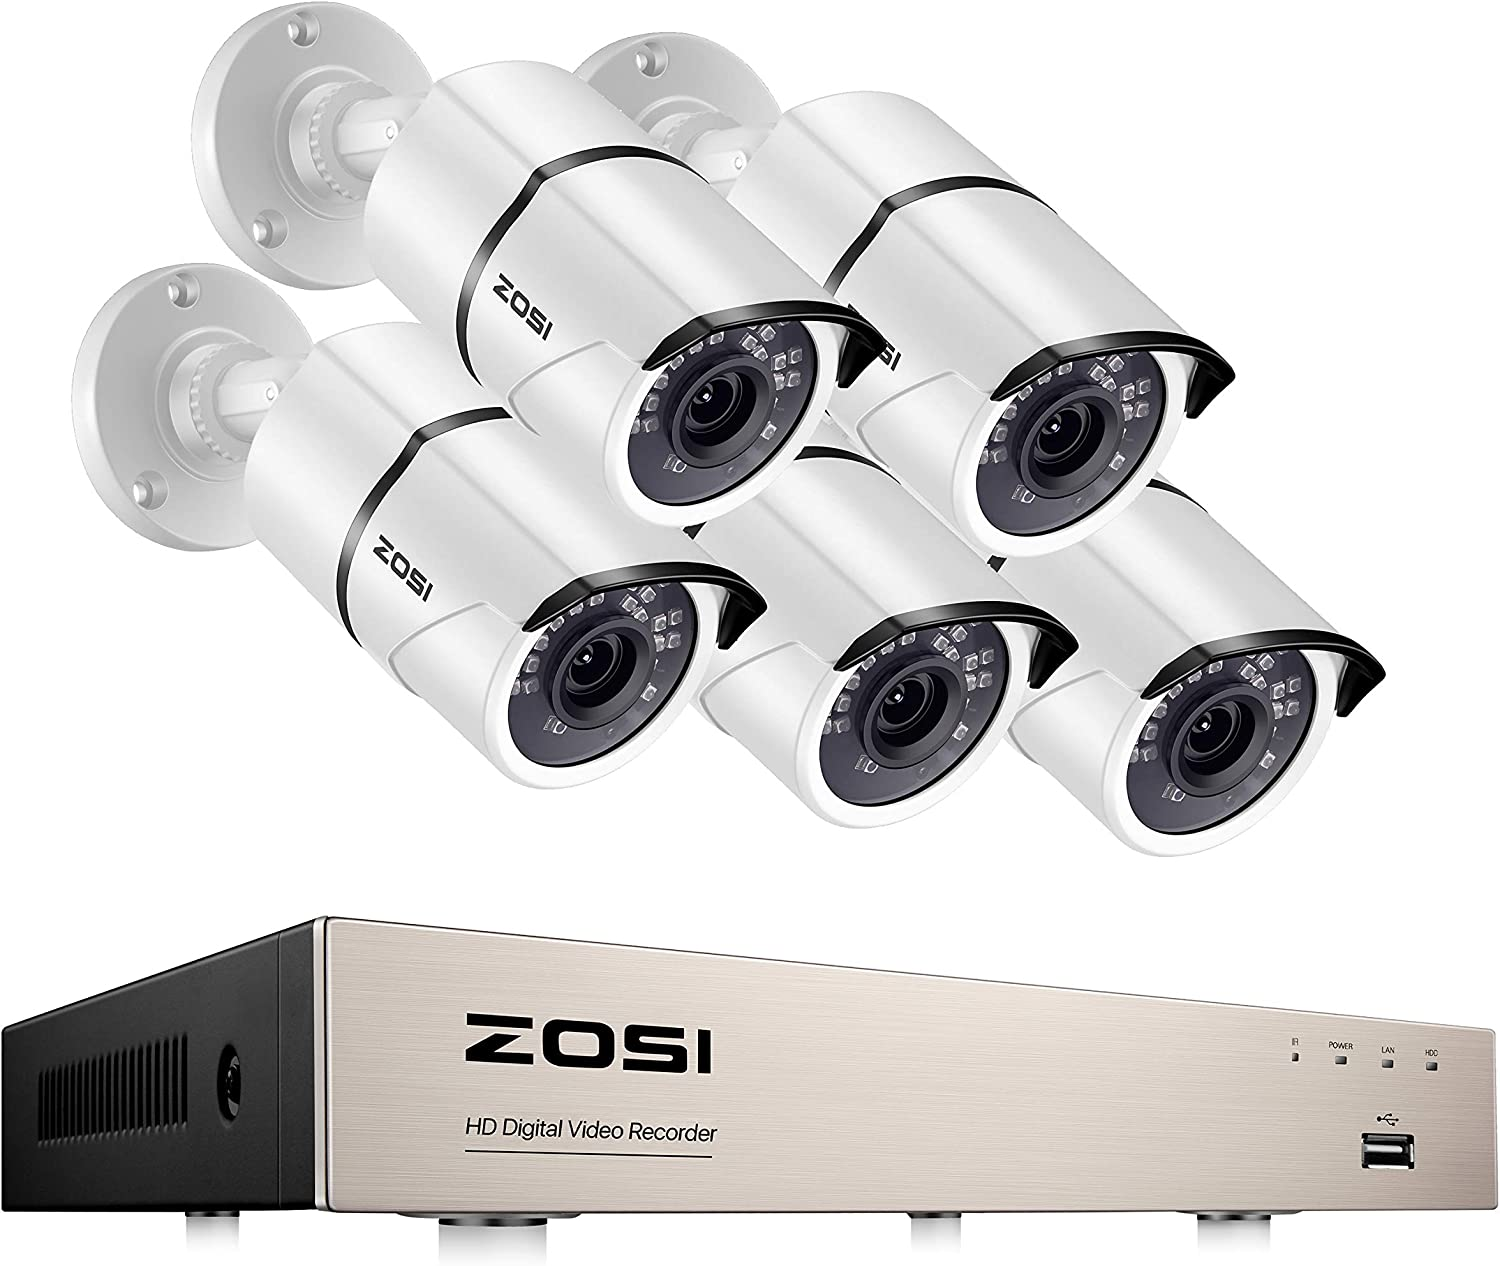 ZOSI H.265+ Outdoor Security Cameras System, 8 Channel 5MP Lite Surveillance DVR with 5pcs 1080P Waterproof Security Bullet Camera, Support 120ft Night Vision, Motion Detection, Remote Access